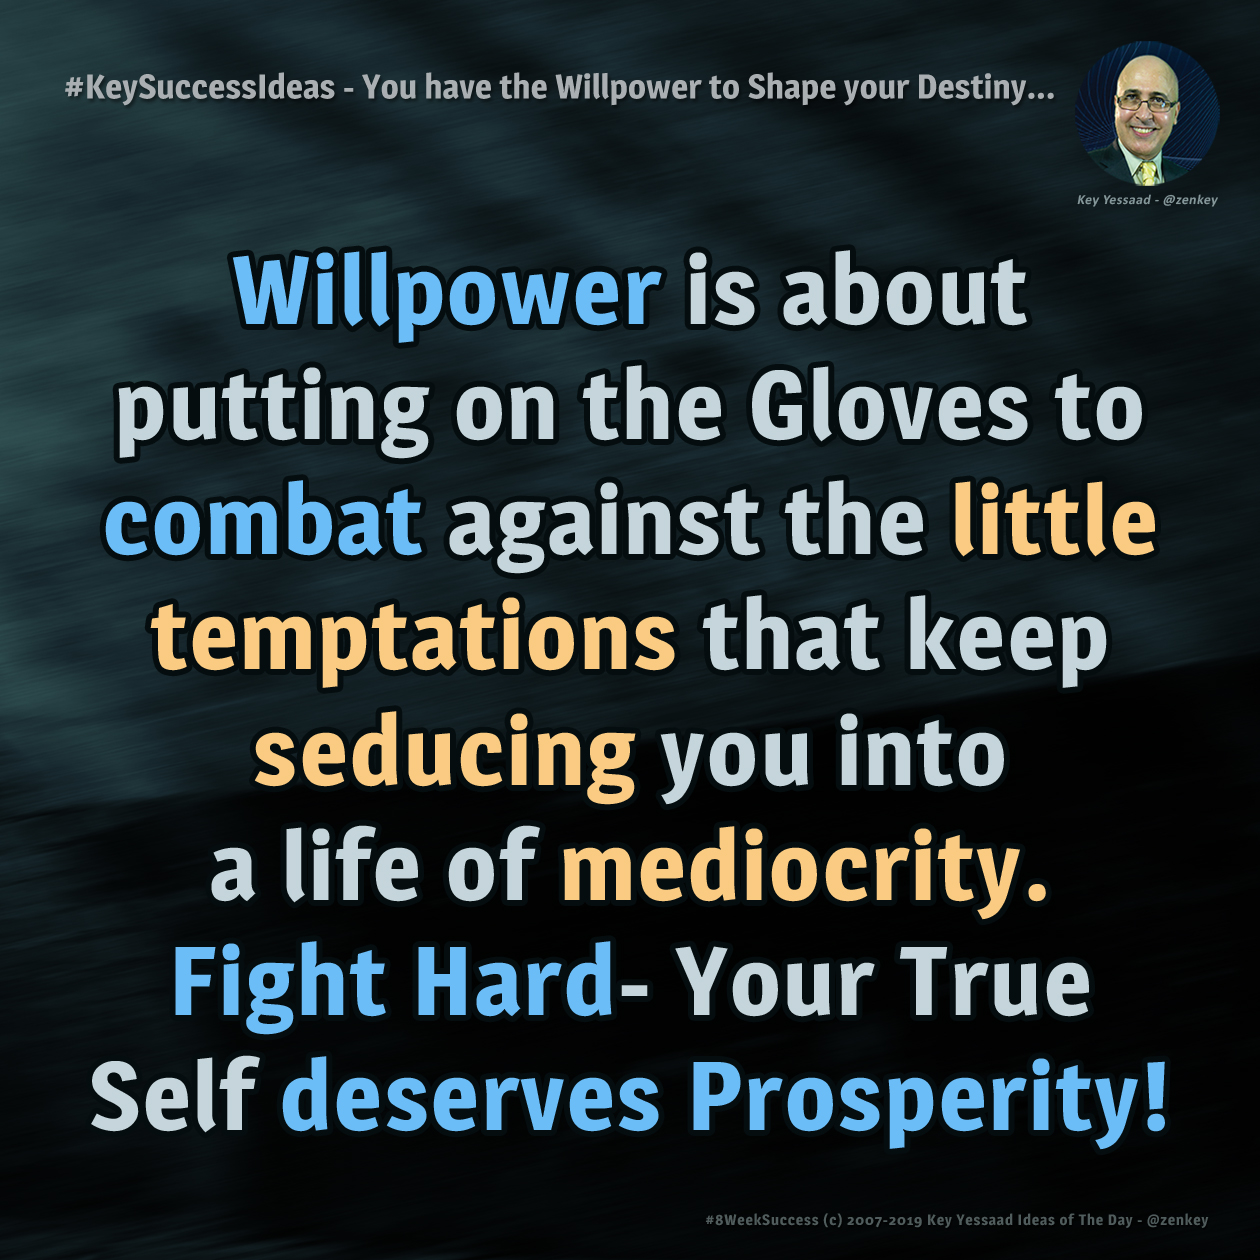 #KeySuccessIdeas - You have the Willpower to Shape your Destiny...